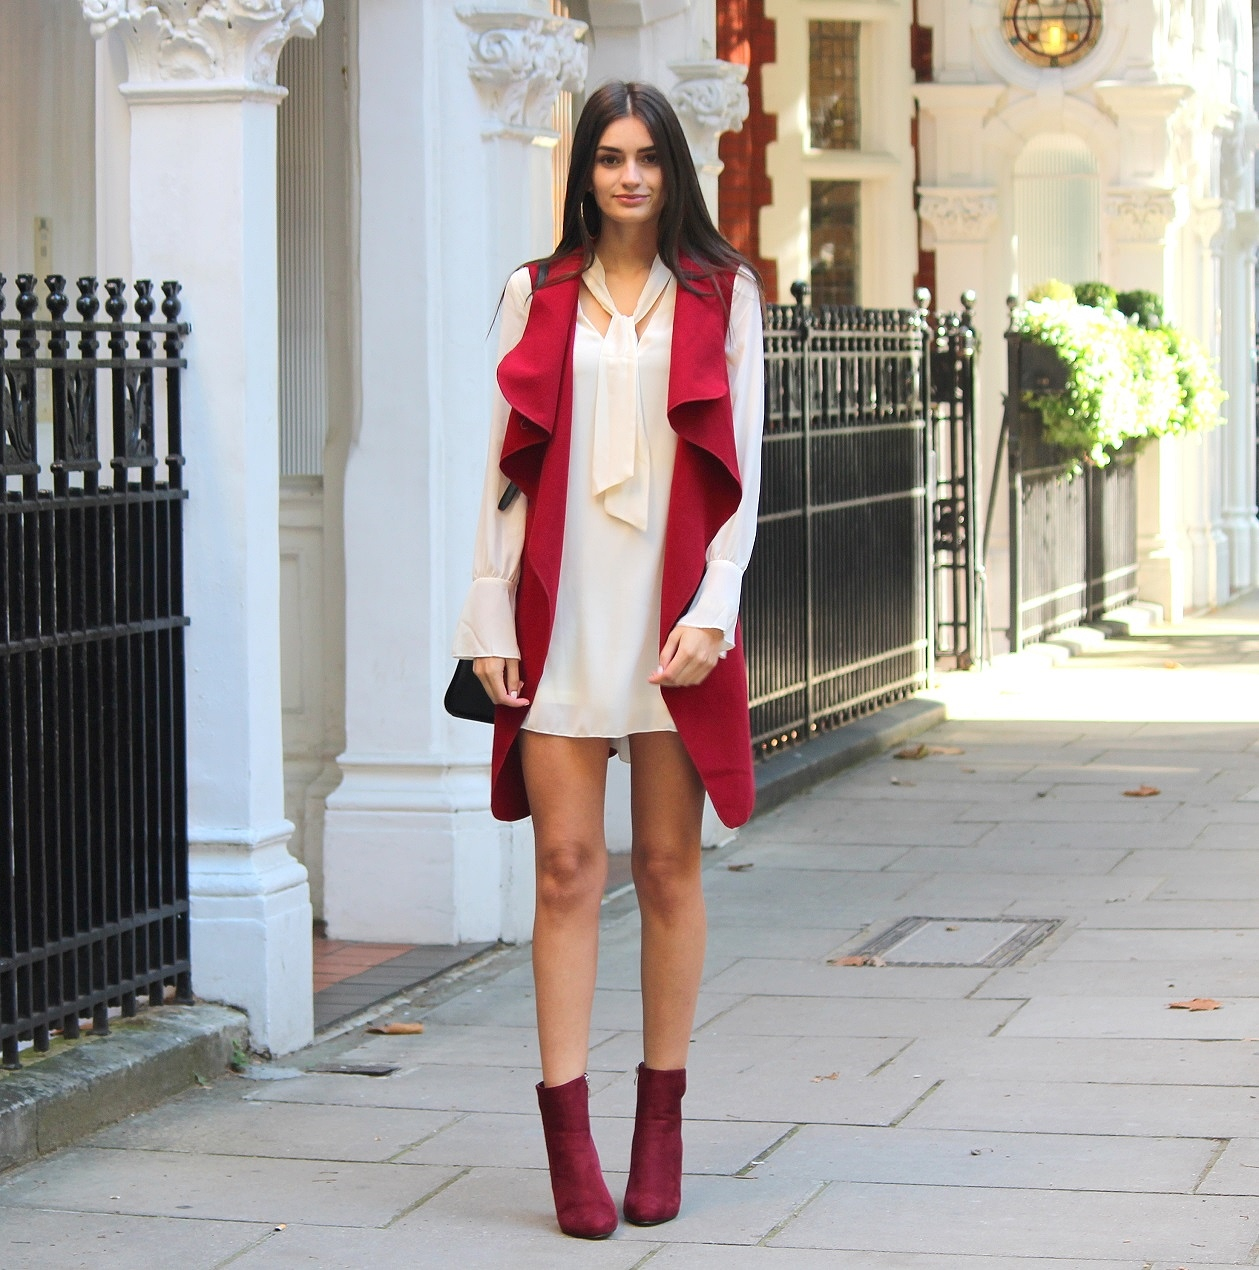 peexo fashion blogger wearing skinny scarf dress and burgundy waterfall sleeveless blazer in autumn